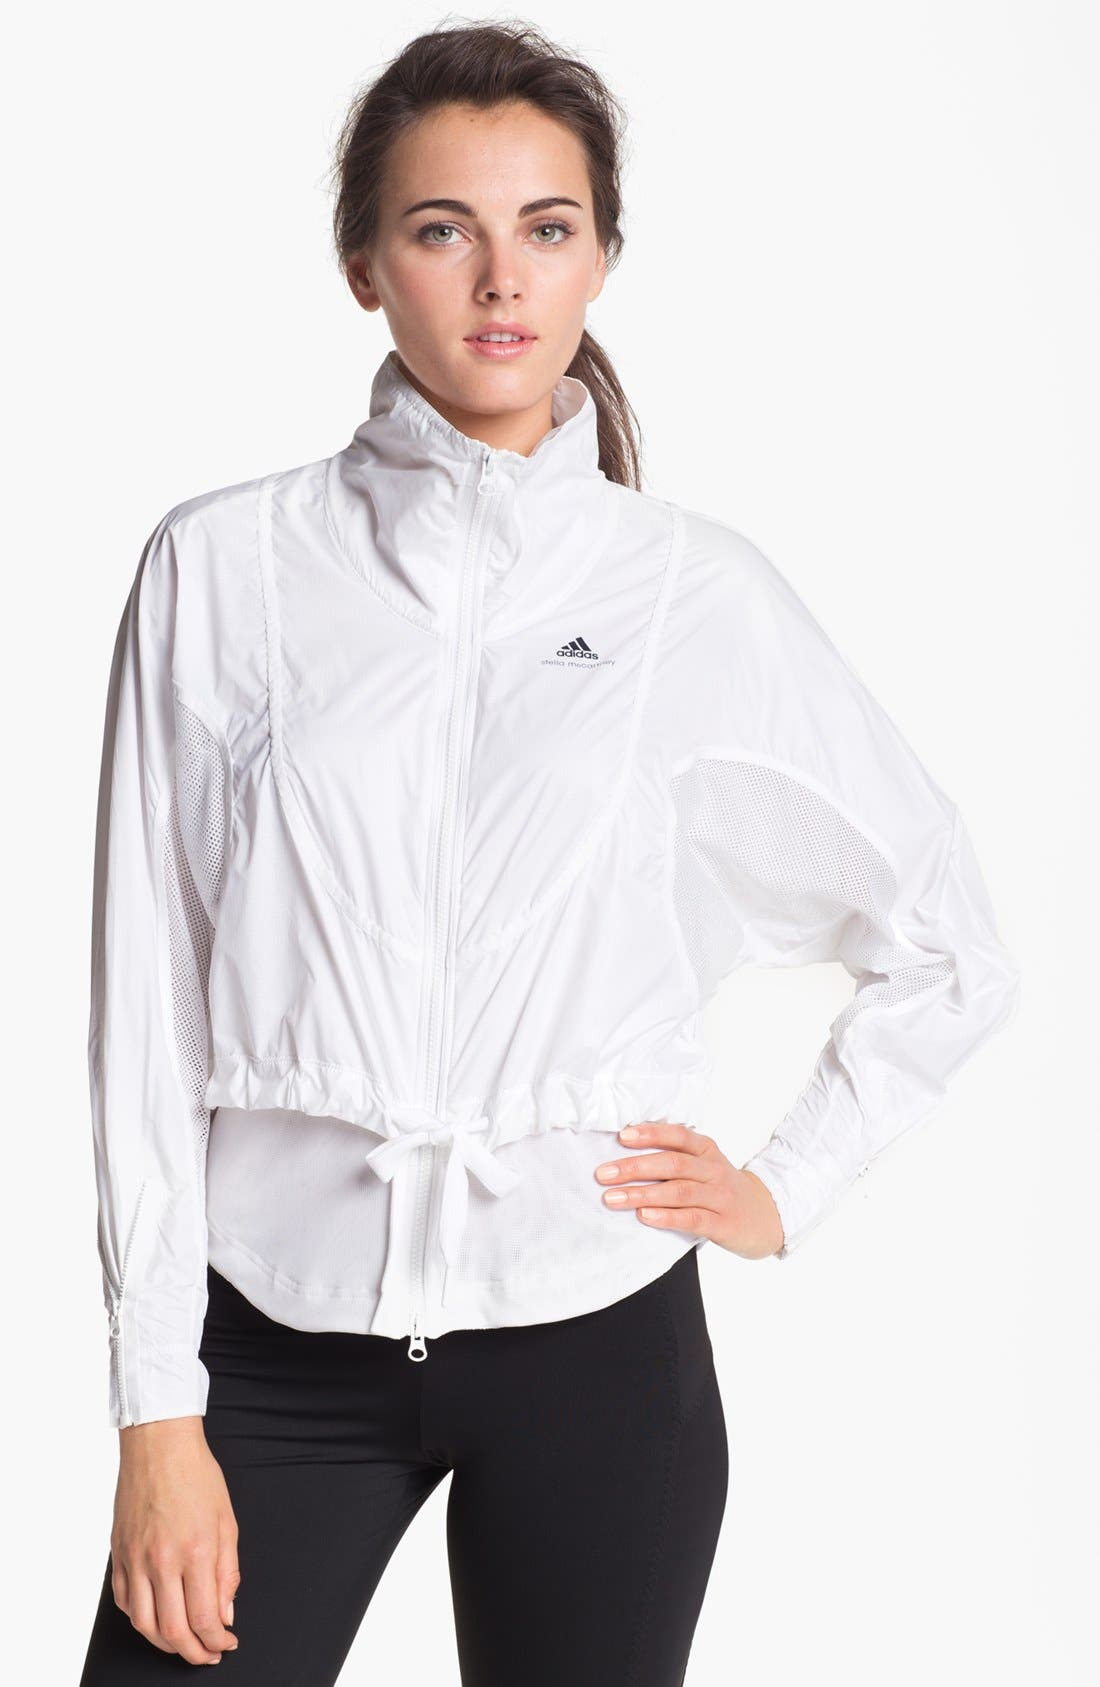 Alternate Image 1 Selected - adidas by Stella McCartney 'Barricade' Warm-Up Jacket